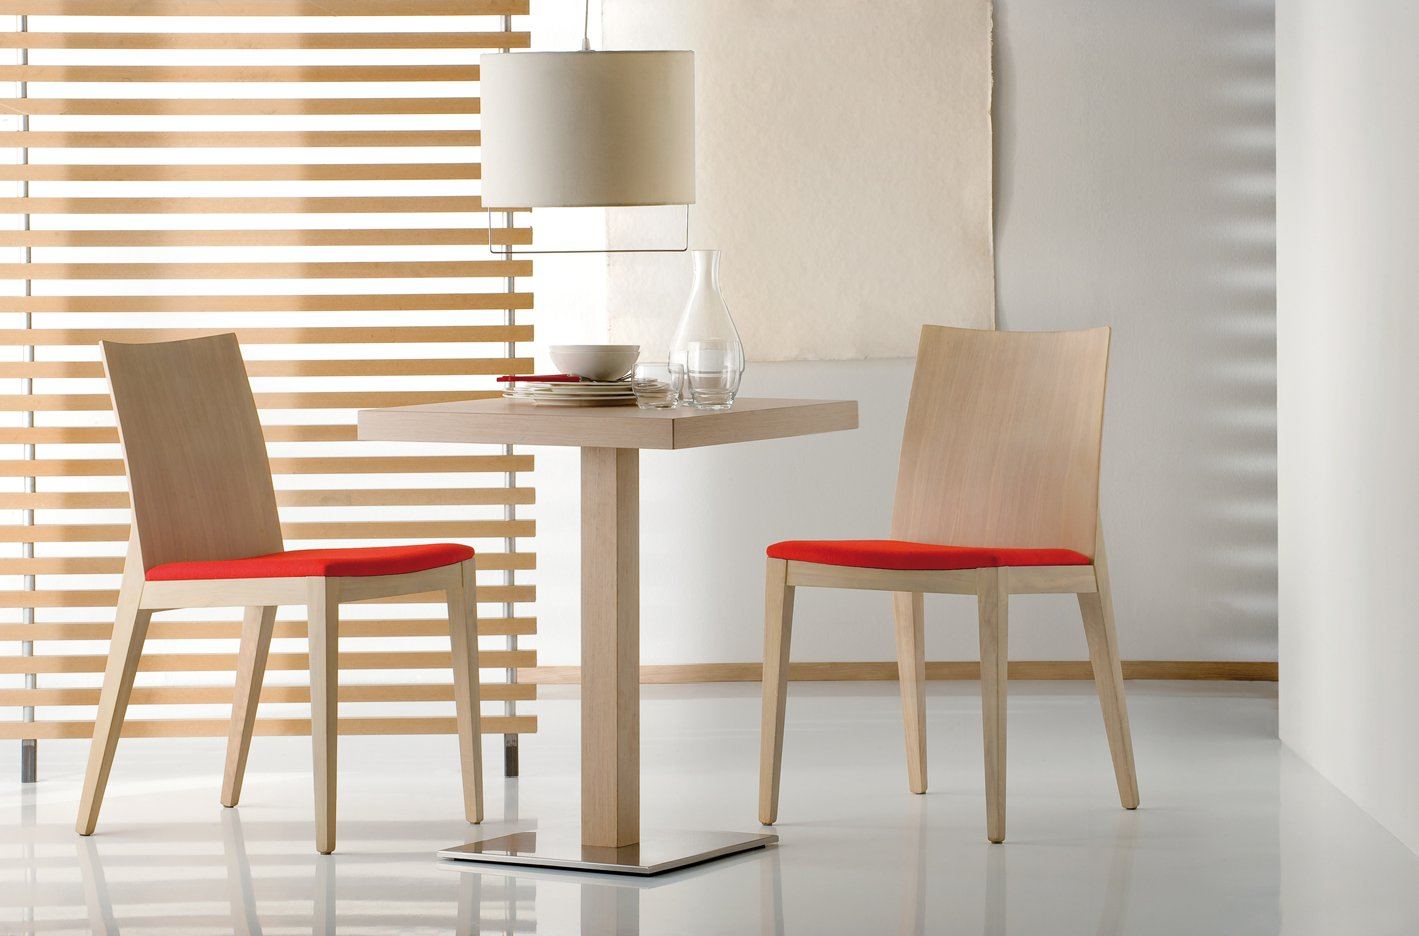 Twig 429 chair from Pedrali, designed by Pedrali R&D